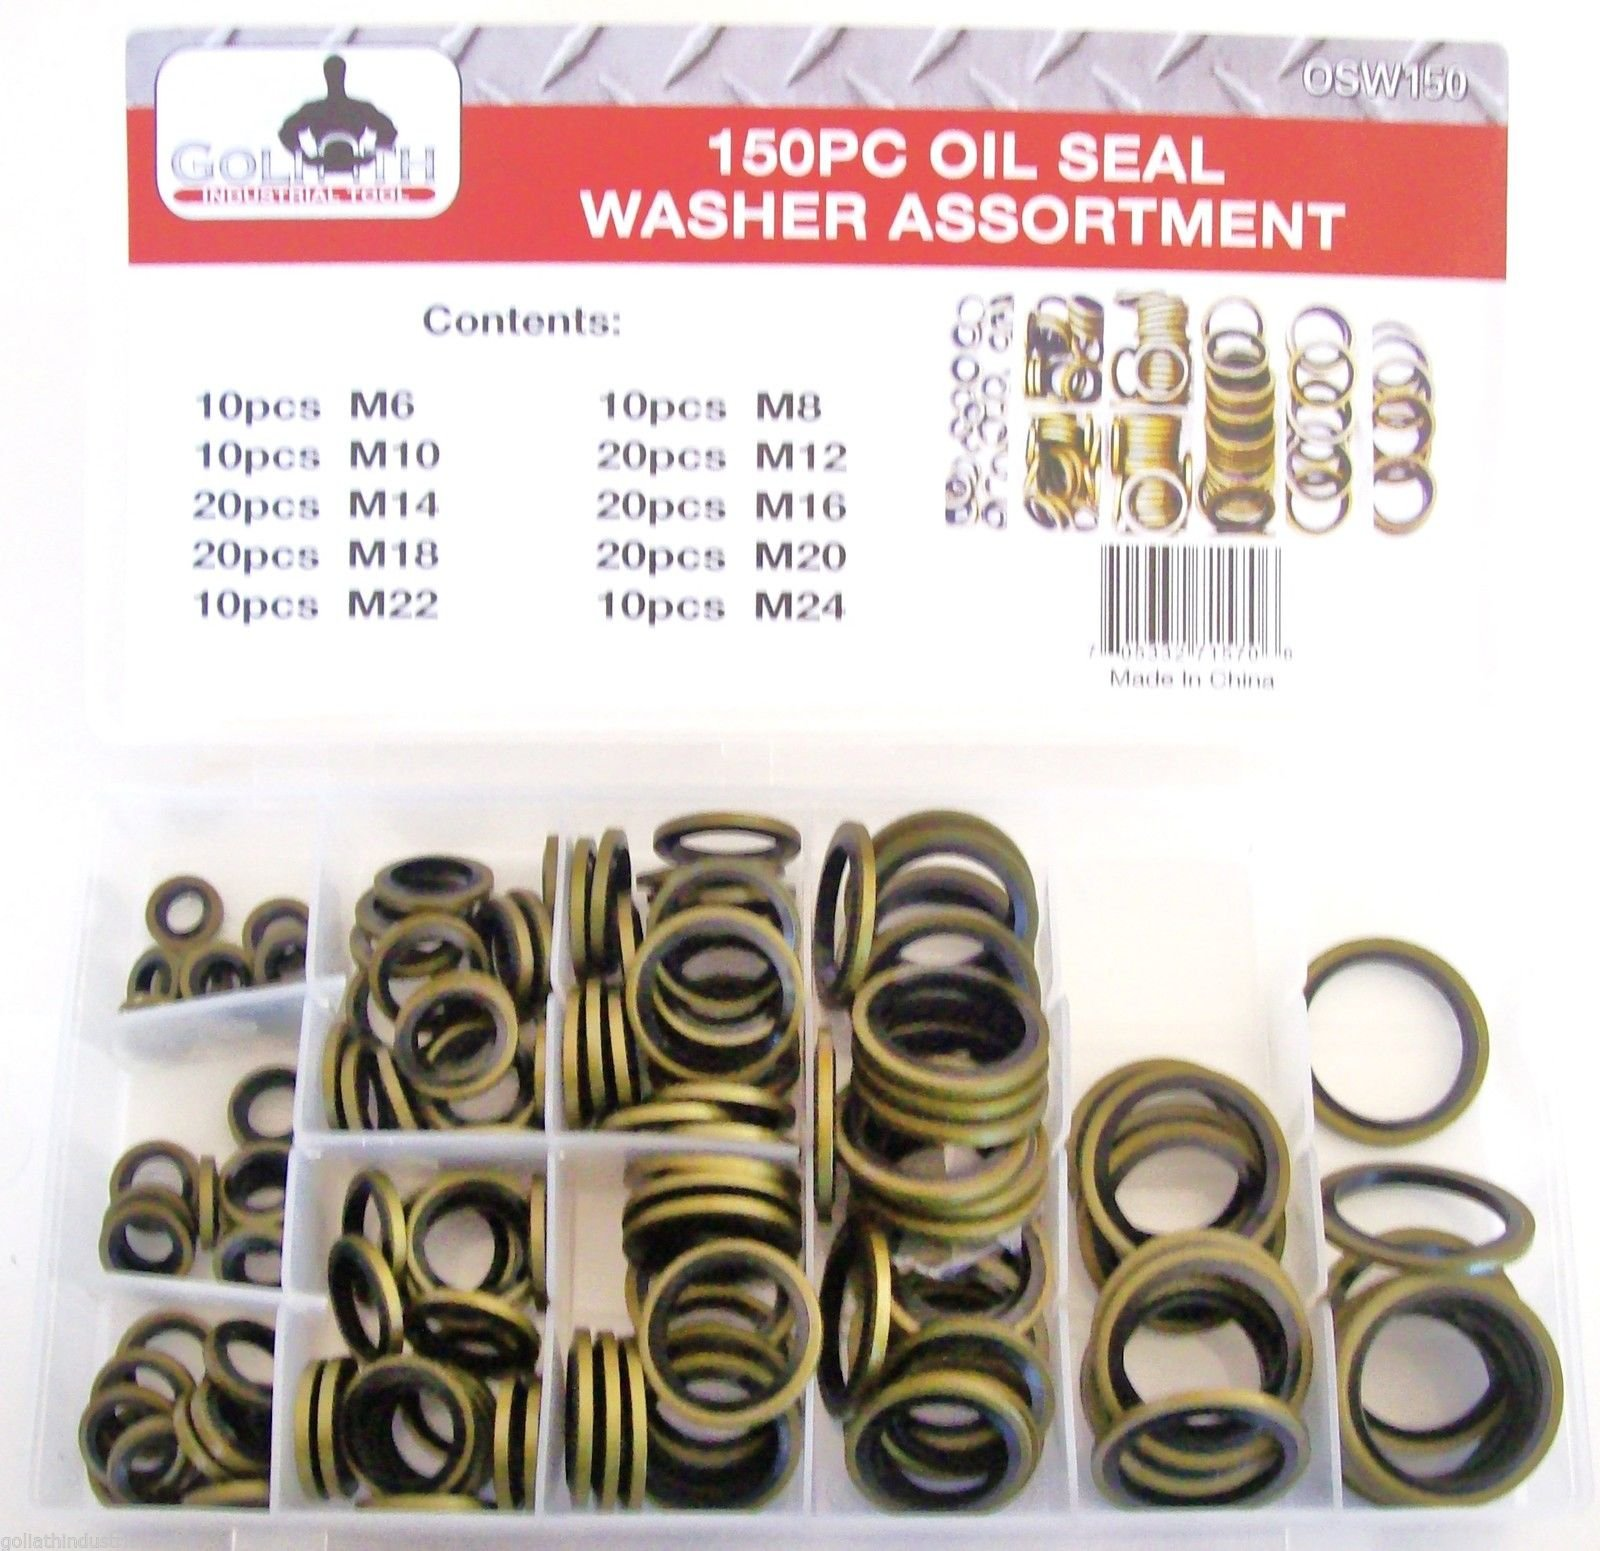 150pc Goliath Industrial Bonded Oil Seal Dowty Washer Assortment Metric OSW150